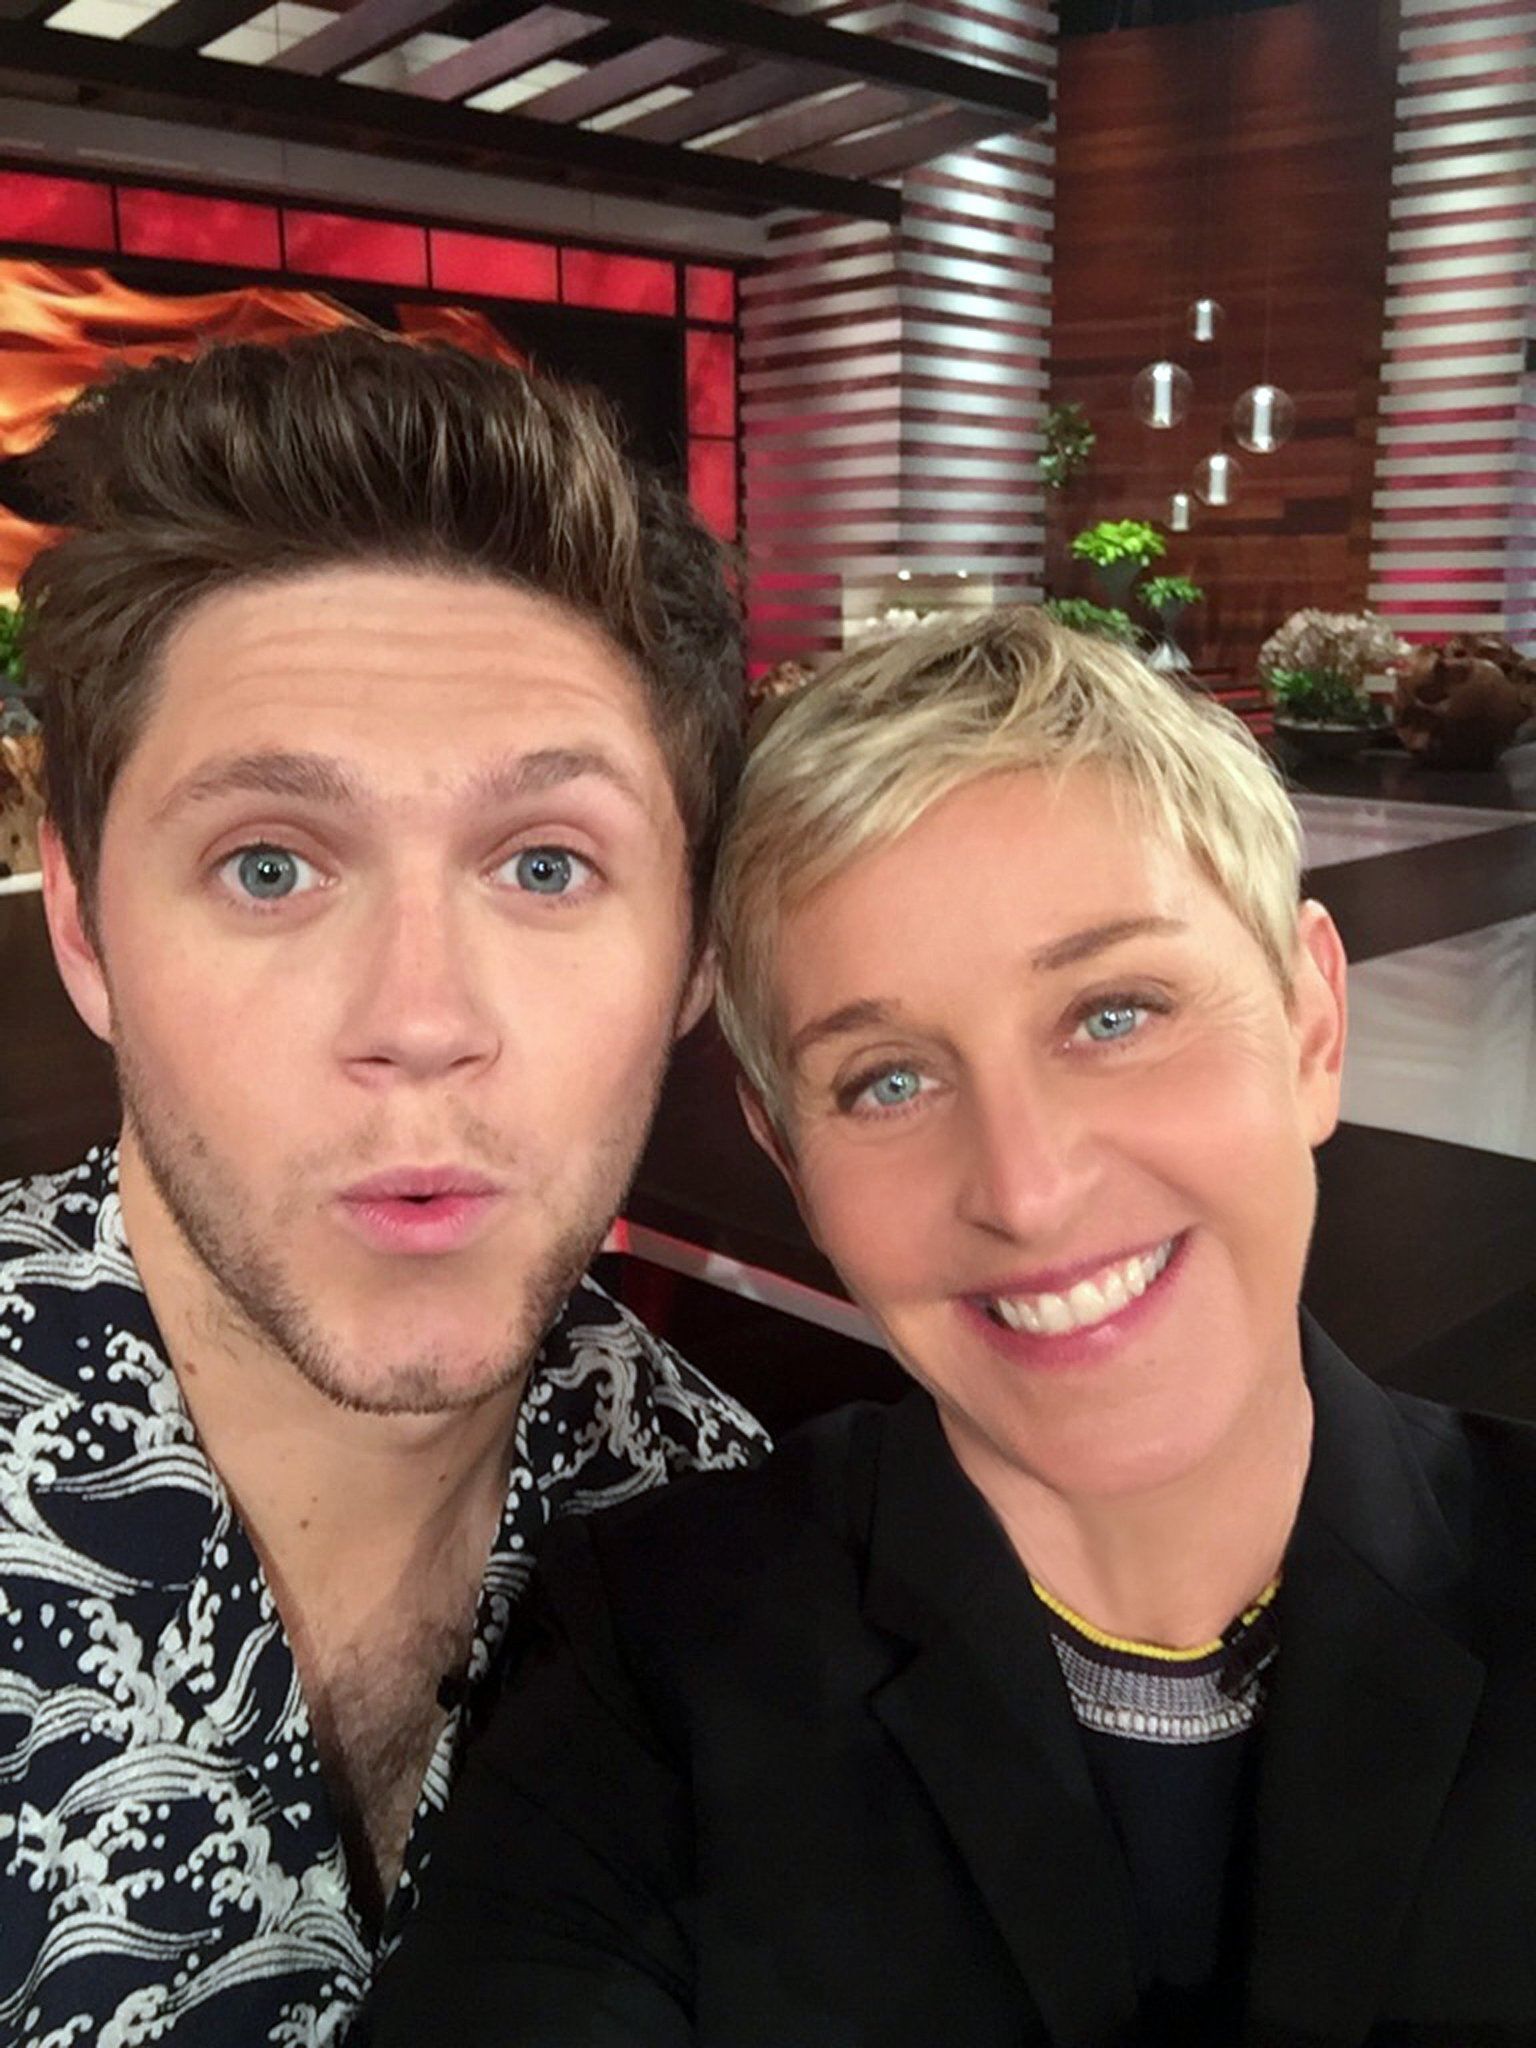 @NiallOfficial We look so good together. https://t.co/wuYqtxrO8e